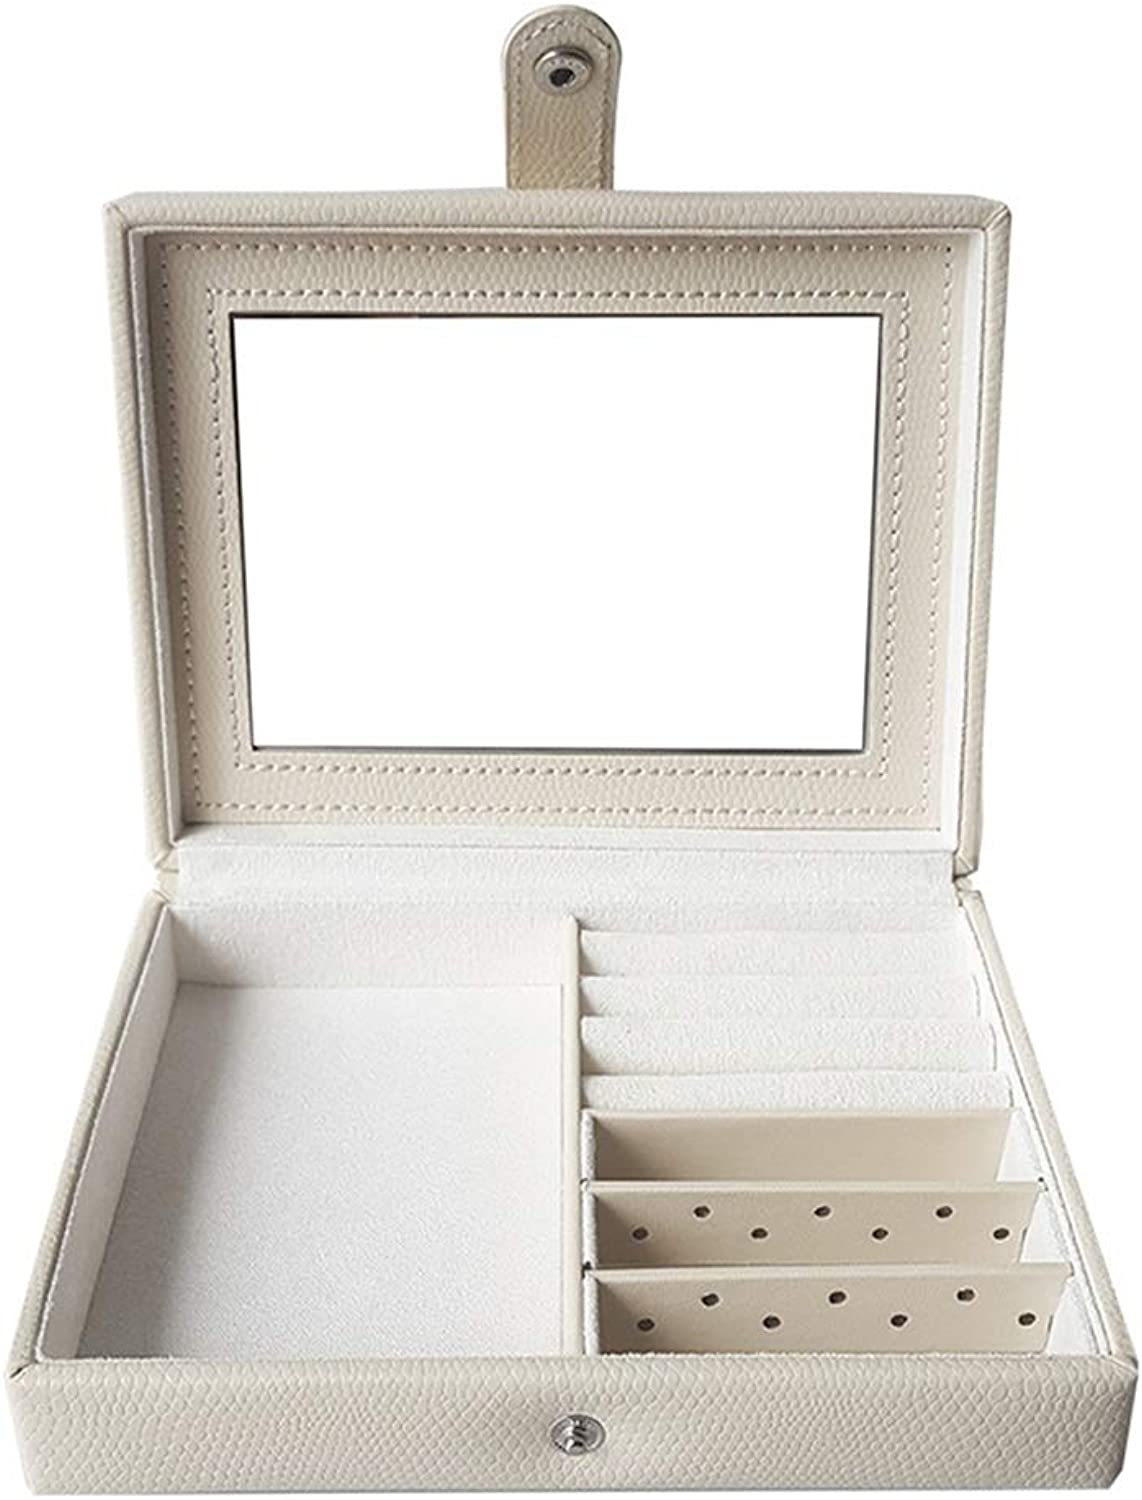 Hang-Dressers Jewelry Box Organiser Small Travel Jewellery Case Portable Faux Leather Jewellery Organiser Box Storage with Mirror for Women (color   White)